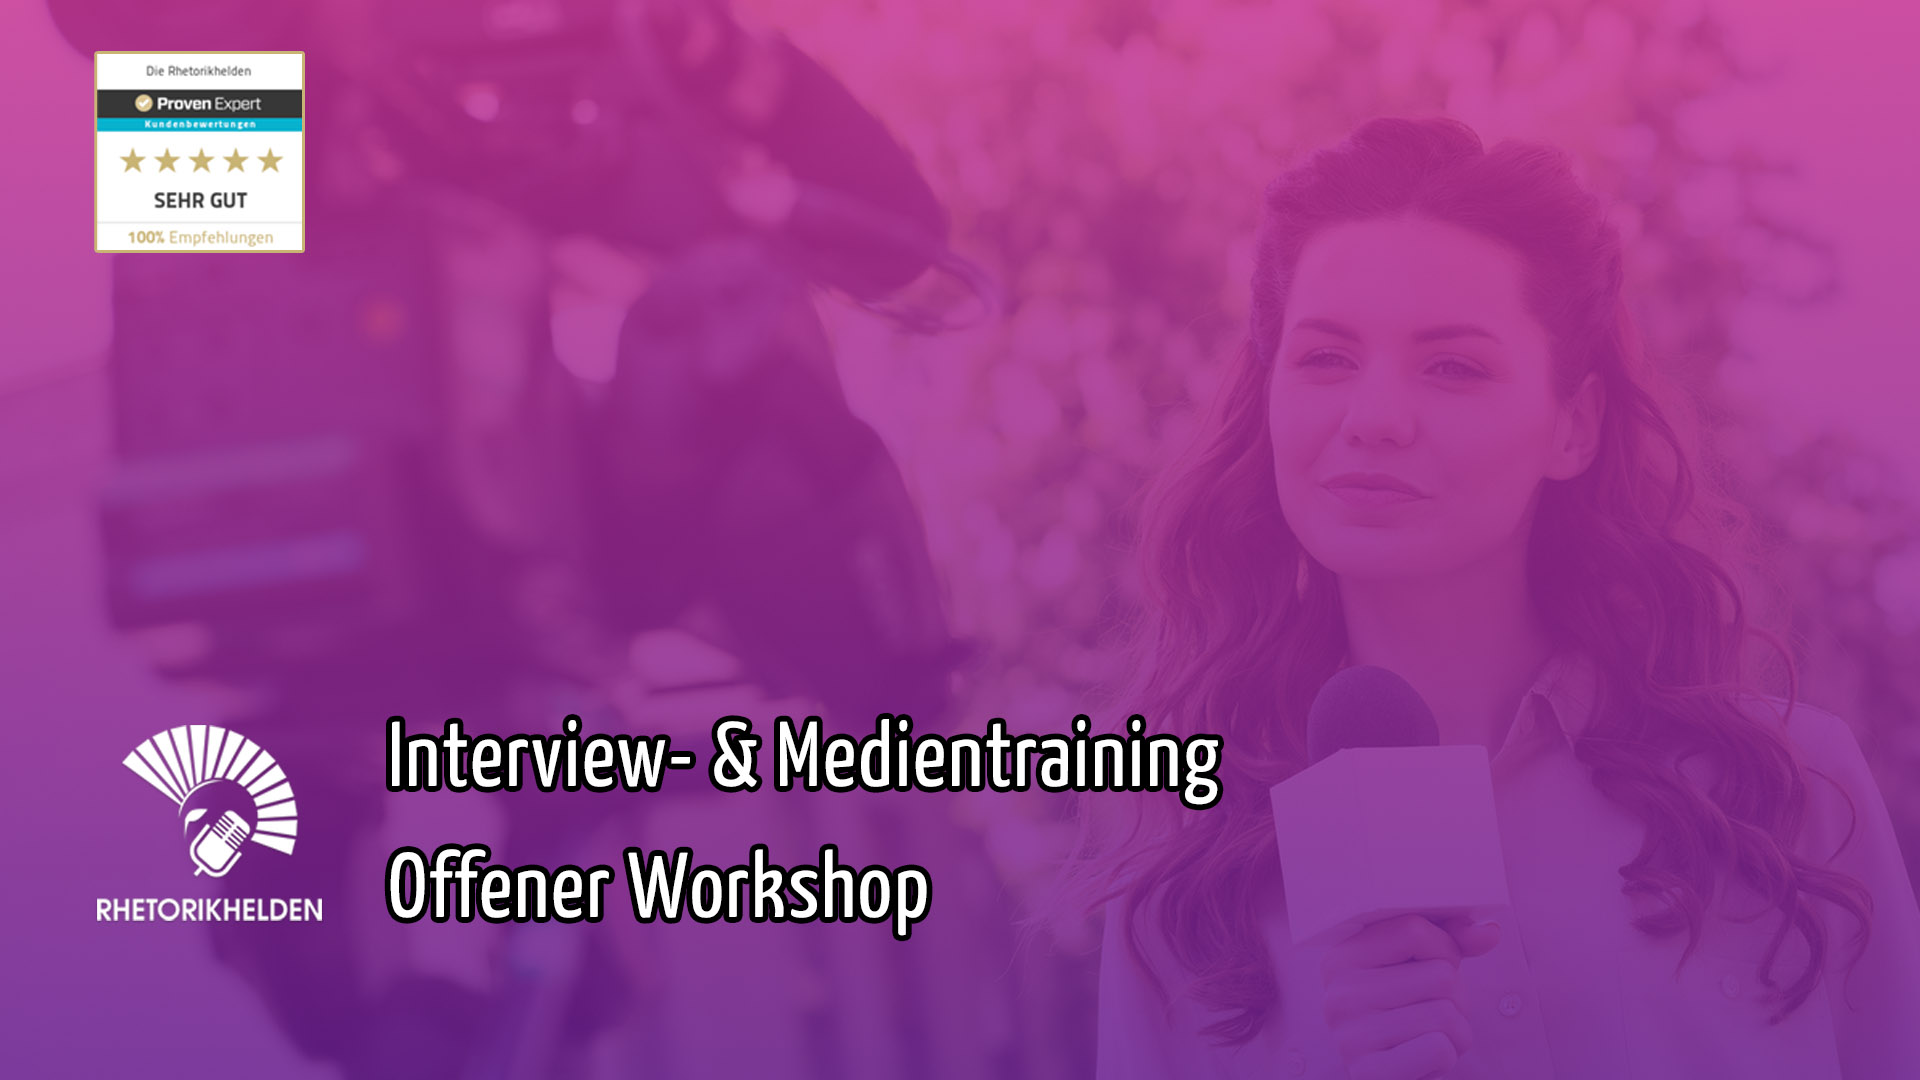 offener-workshop-medientrainin-interview-rhetorikhelden